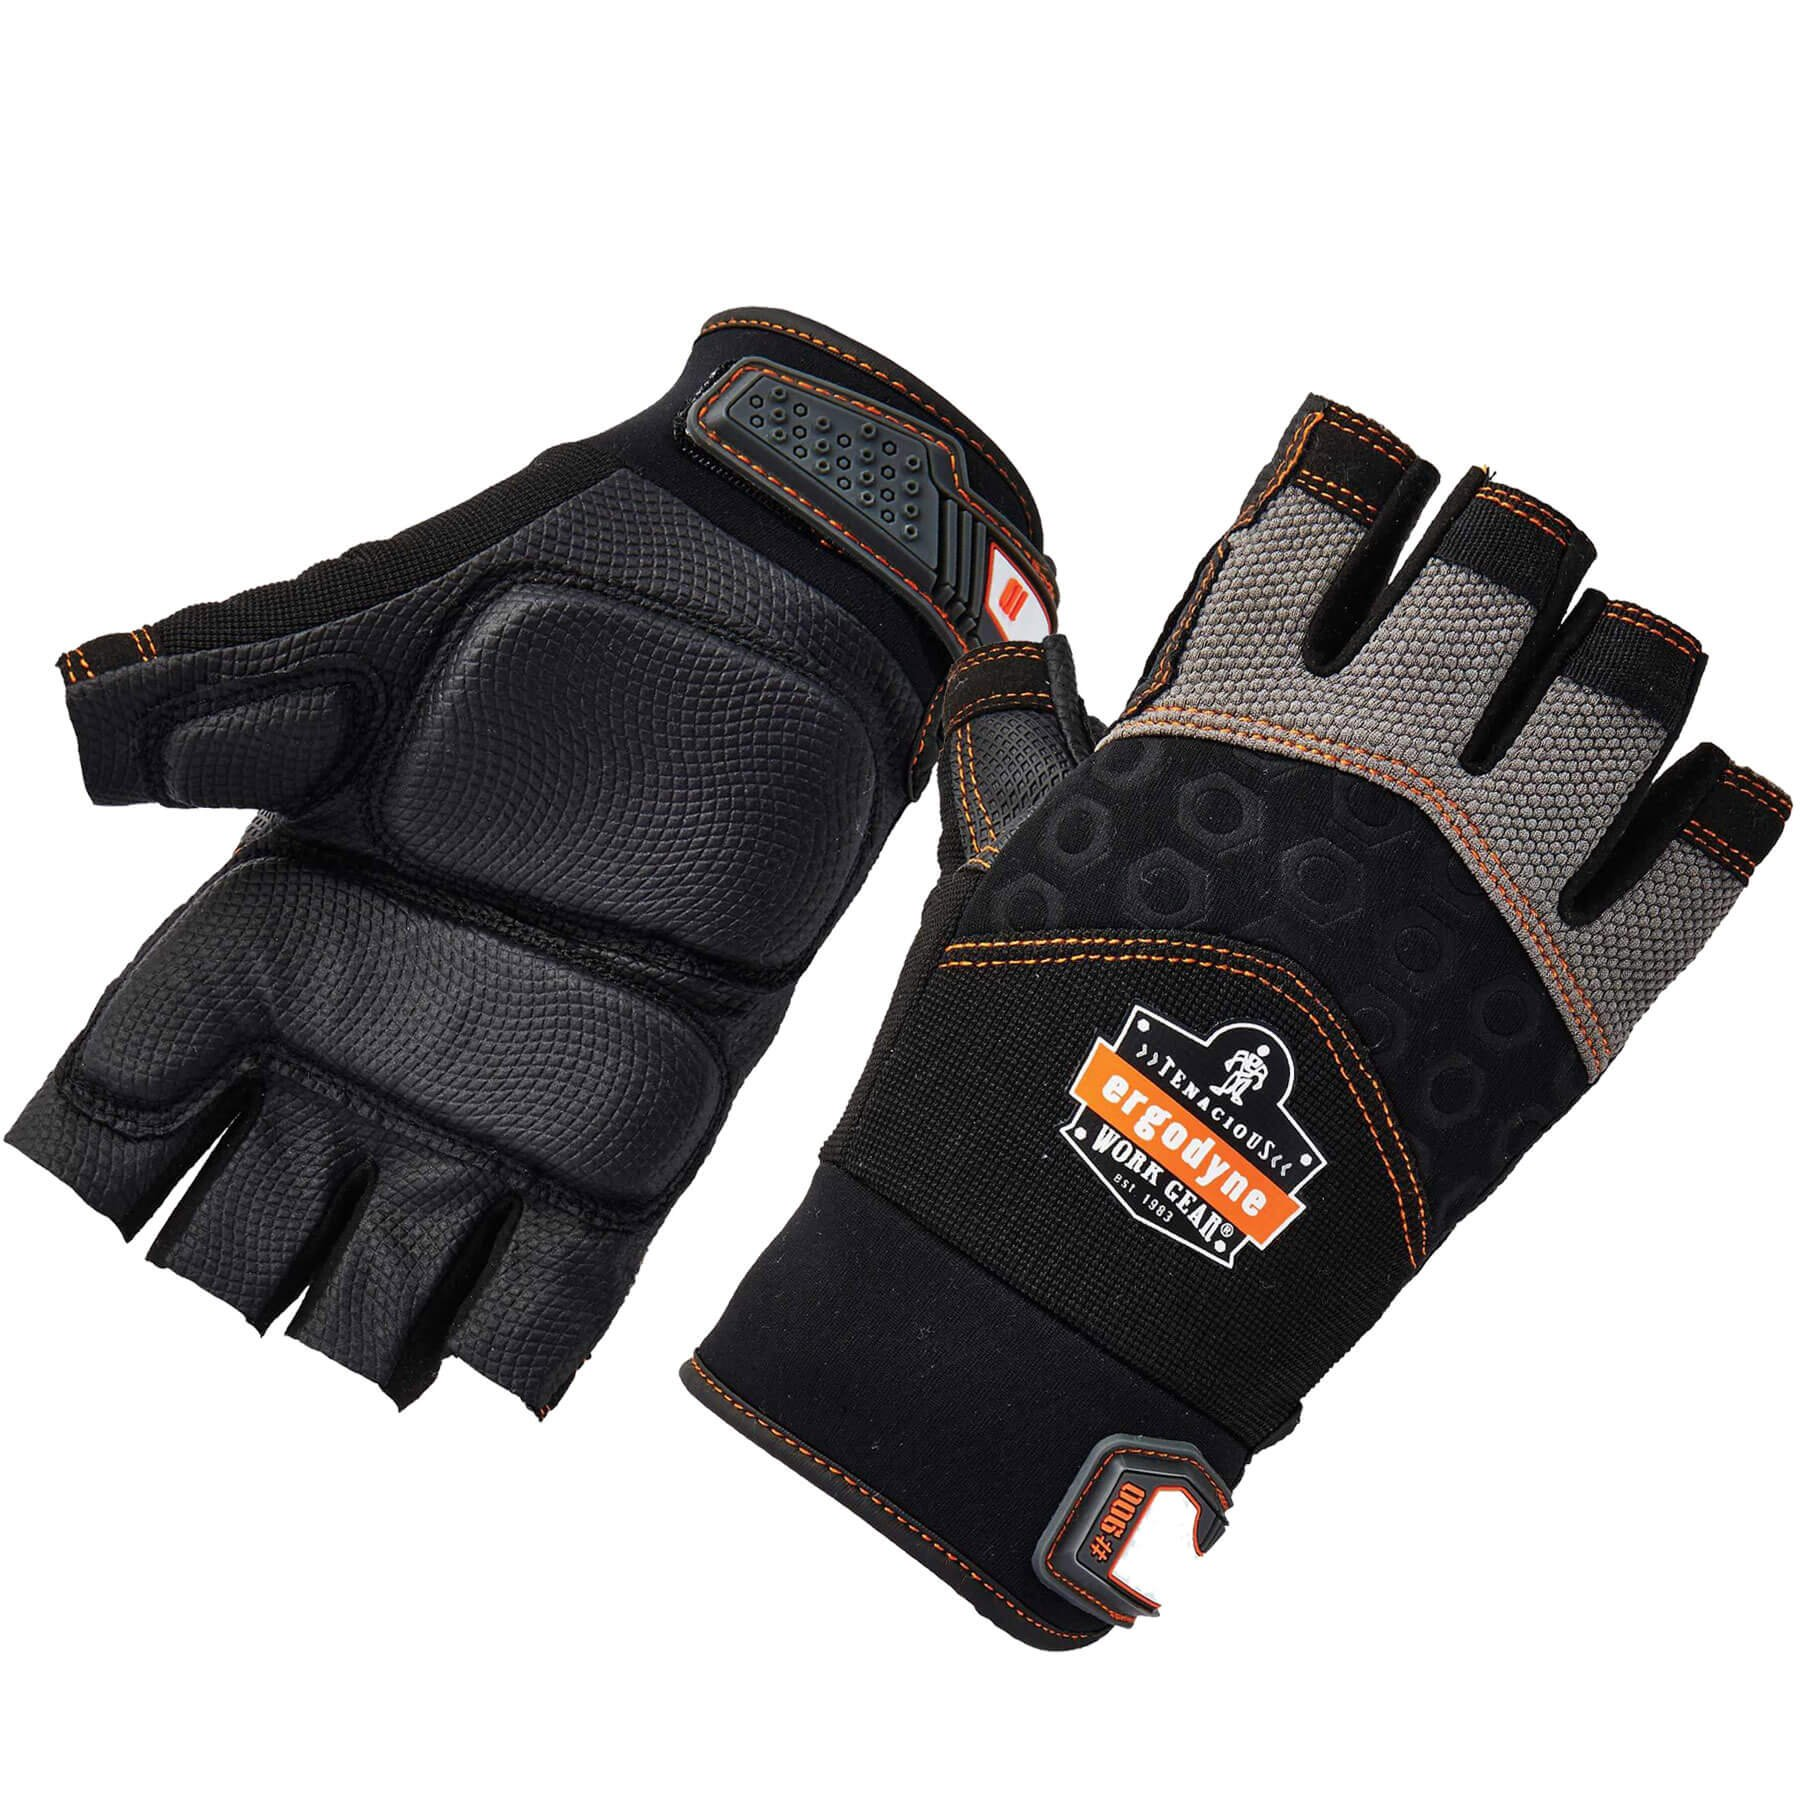 Ergodyne ProFlex 900 Impact Protection Work Gloves, Padded Palm, Half-Finger, X-Large by Ergodyne (Image #1)